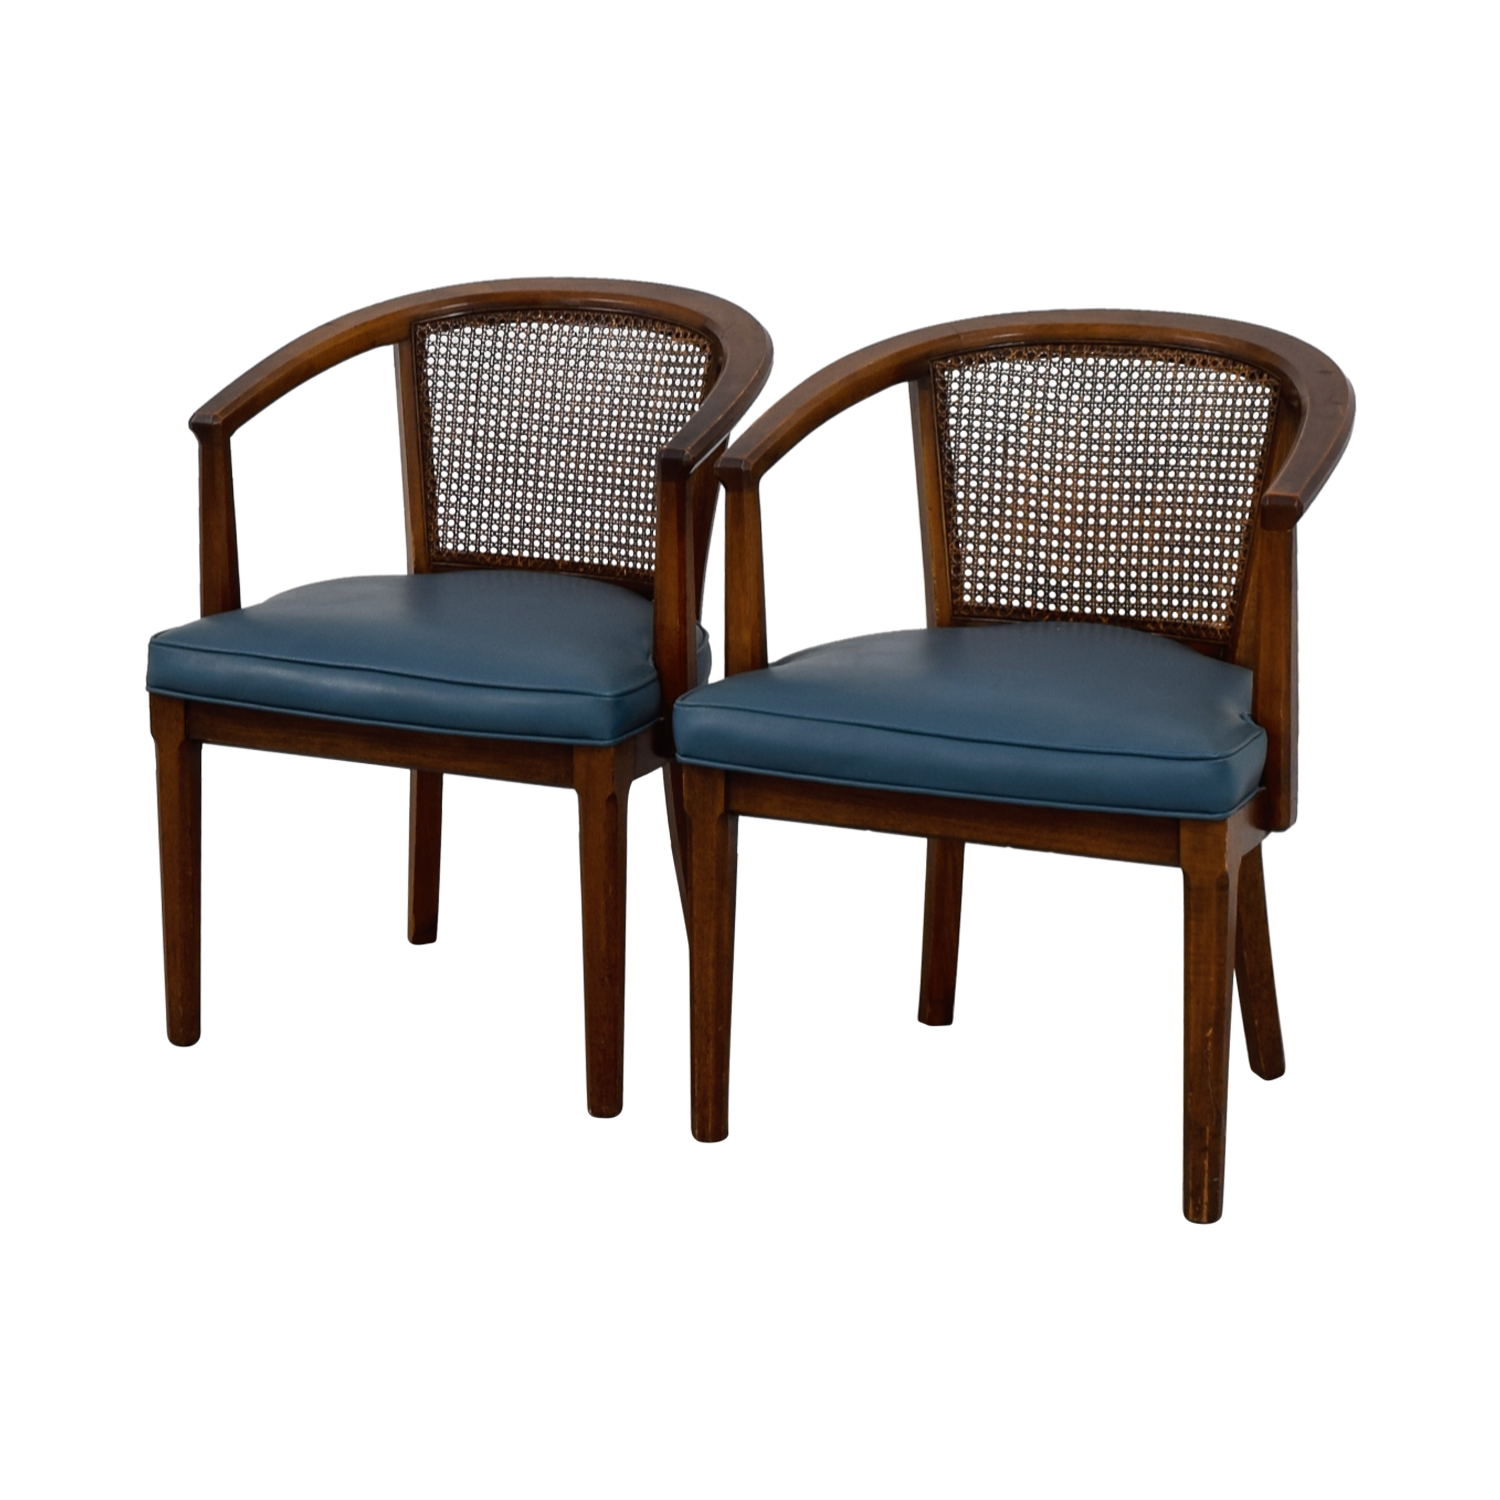 cane barrel chair wood side chairs 76 off vintage mid century navy